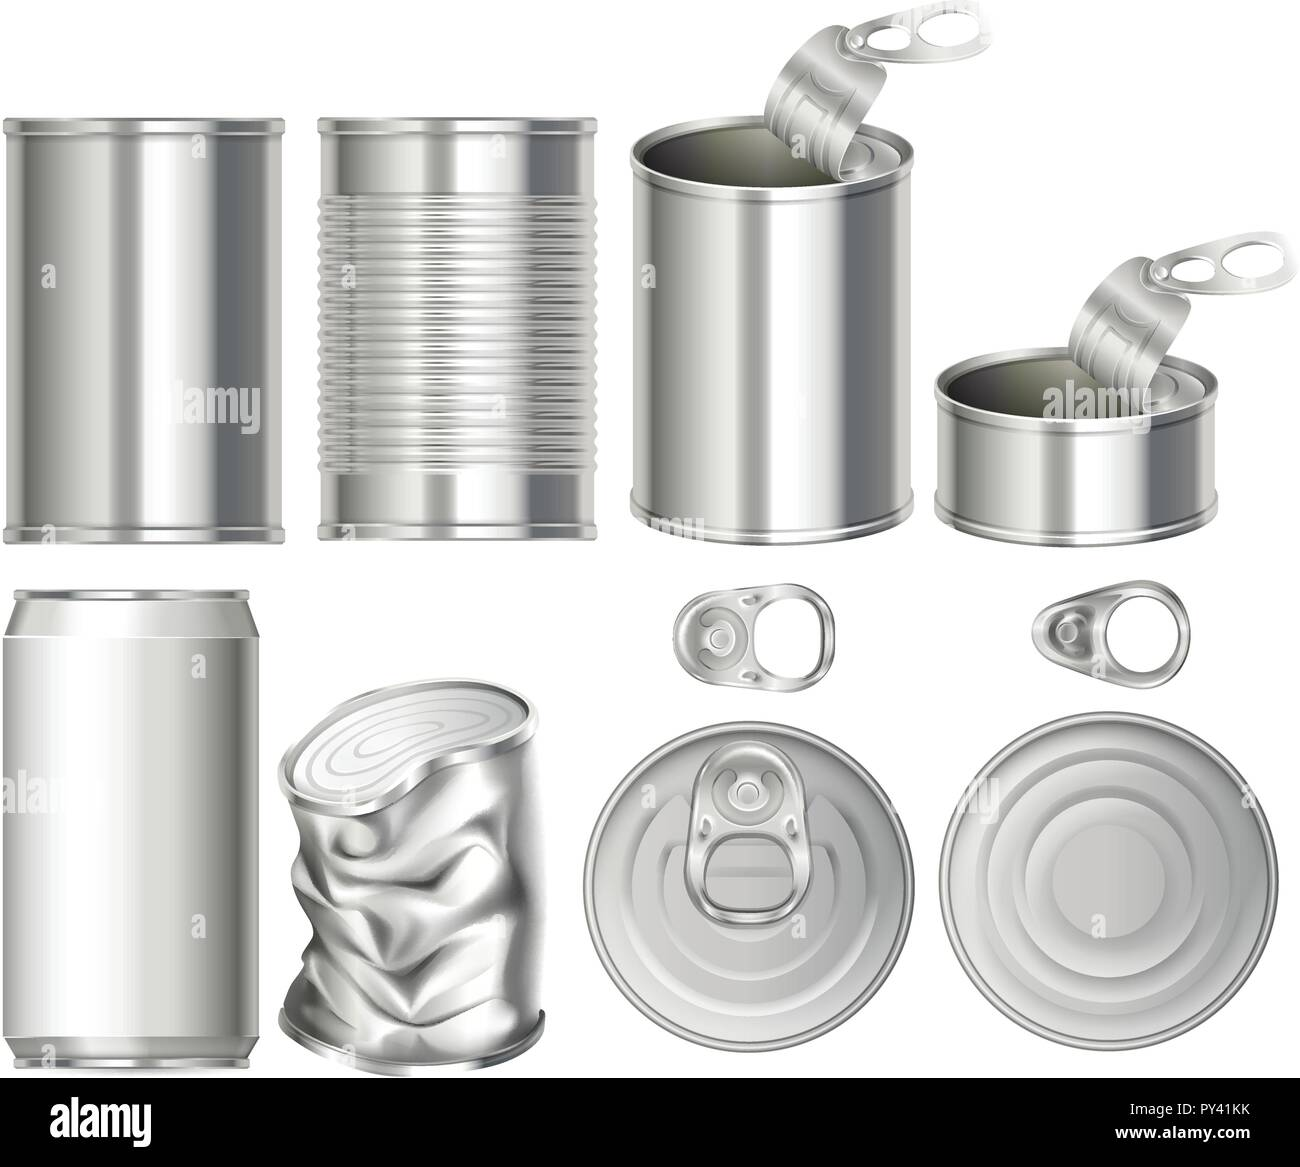 A Set of Can Container illustration - Stock Image